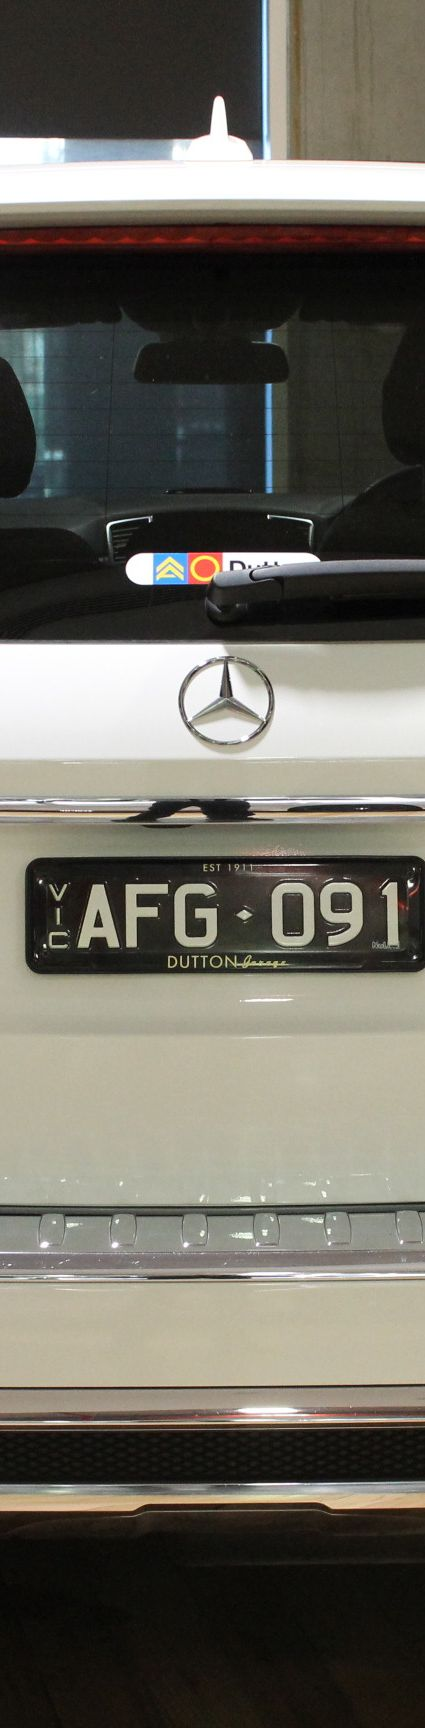 2013 Mercedes-Benz ML350 W166 BlueTEC Wagon - for sale in Australia